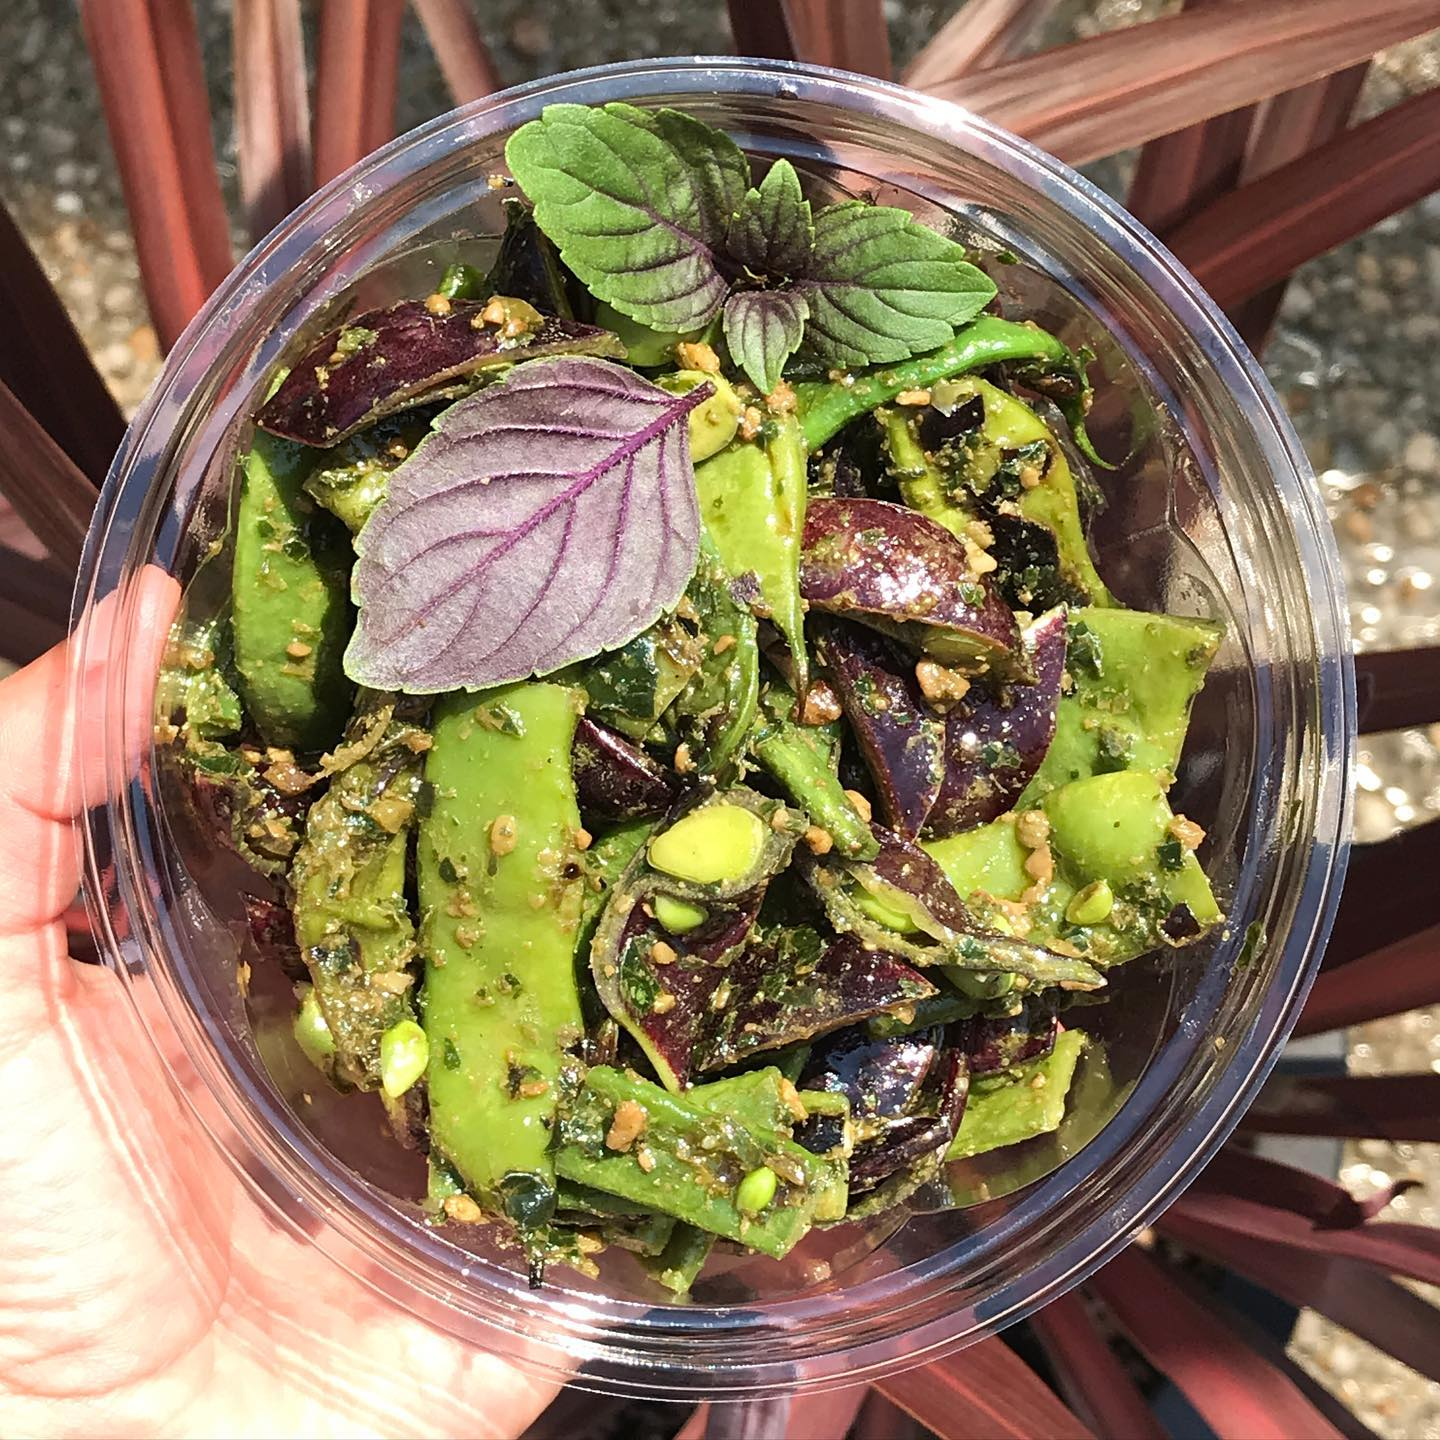 Summer salads are here! Grilled Romano beans from @gooddogfarm and @lancasterfarmfresh Beauregarde purple snow peas tossed in a vegan pesto made from @moonvalleyfarm African blue basil, sunflower seeds, mustard greens, and pickled kohlrahbi. As delicious as it is beautiful. #picnicfood #summerbounty #beauregardesnowpea #romanobeans #grilledveggies